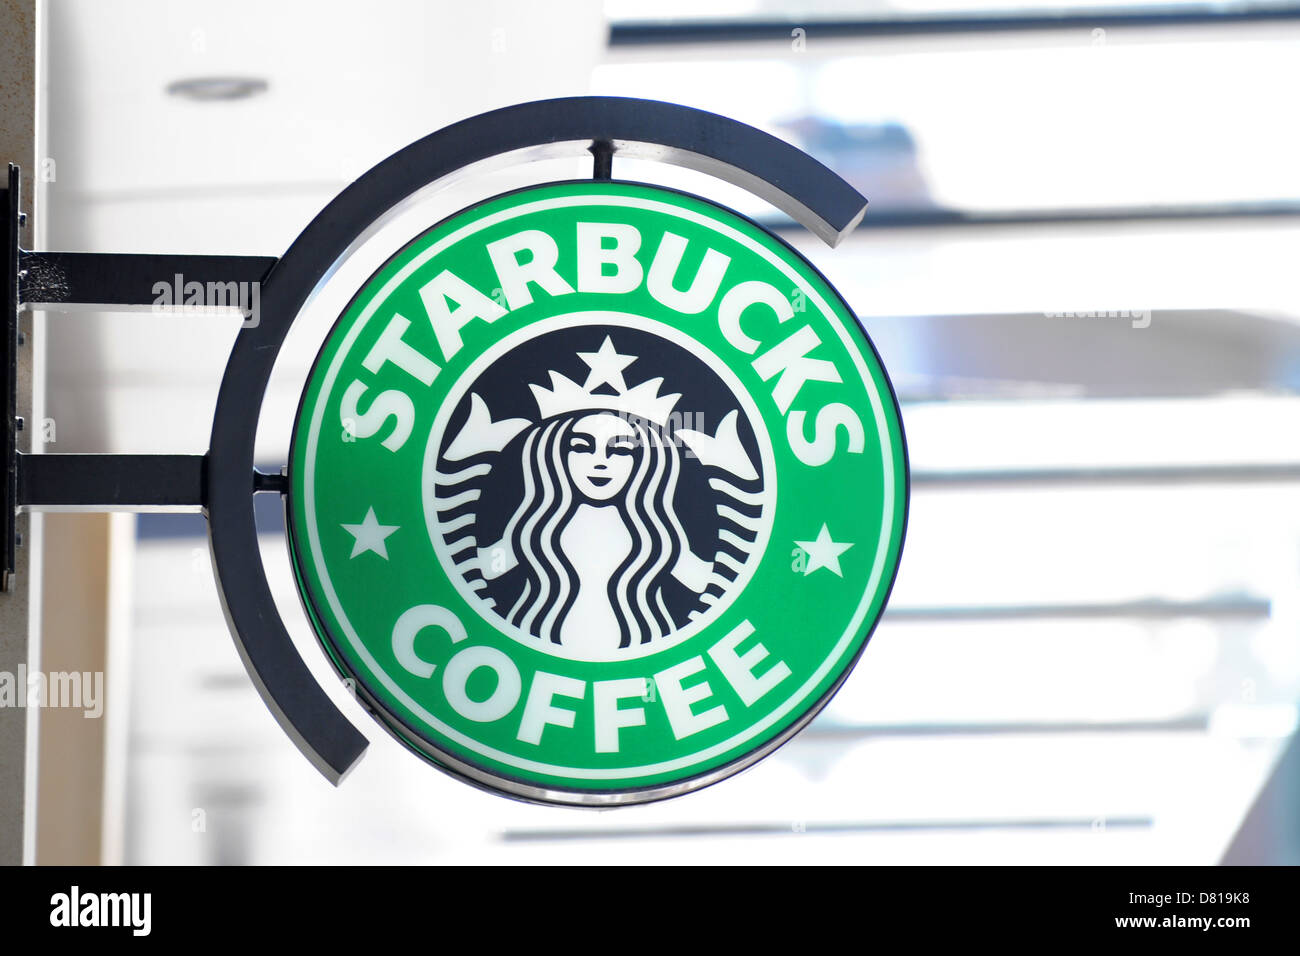 Starbucks sign in Cardiff. - Stock Image